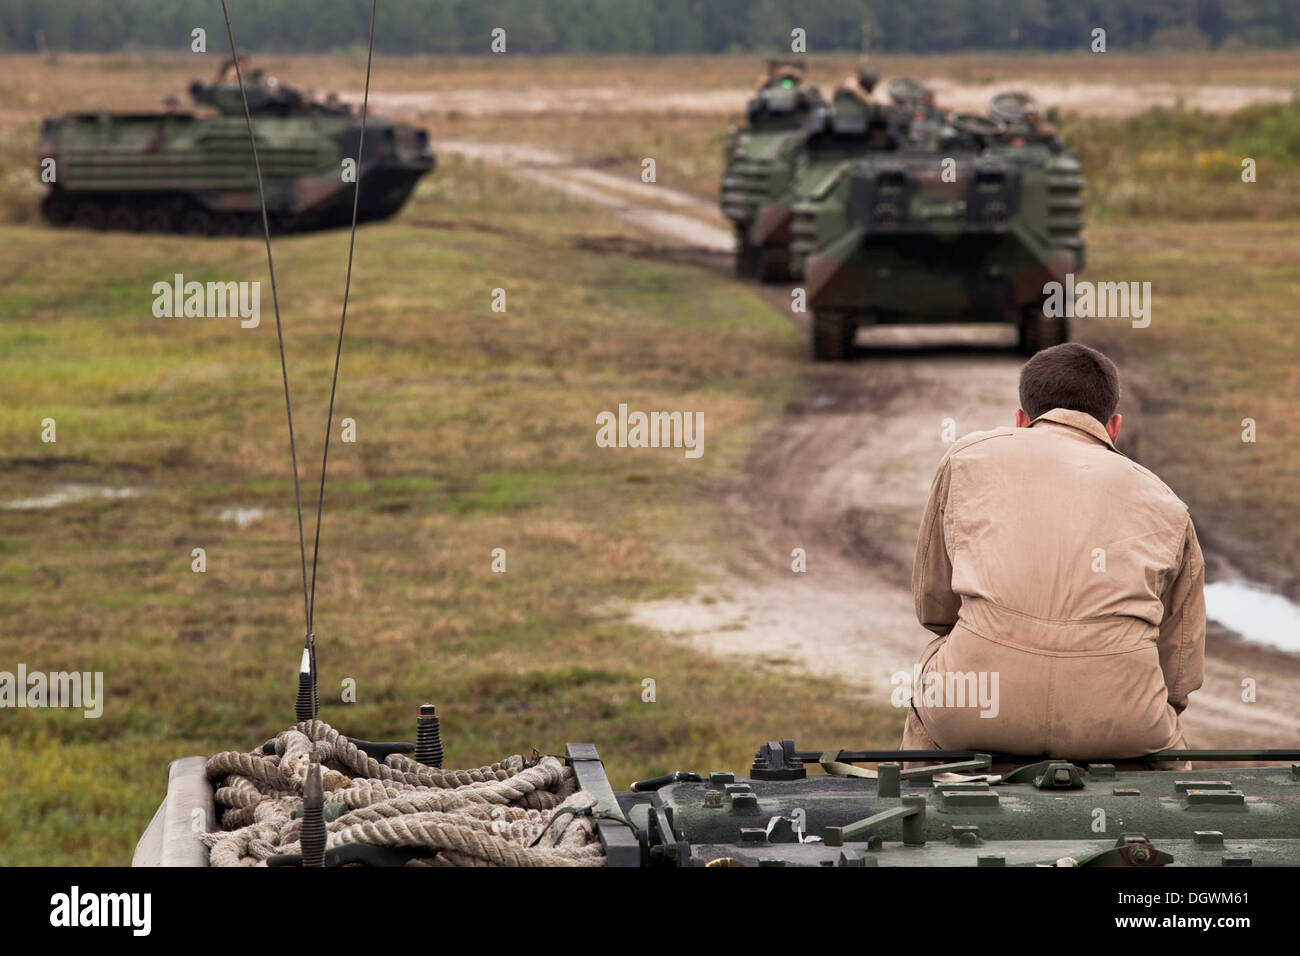 U.S. Marines with Bravo Company, 2nd Assault Amphibian Battalion, 2D Marine Division perform platoon size movements with AAV-7 Amphibious Assault Vehicles at Training Landing Zone Falcon aboard Camp Lejeune, N.C. Oct 18, 2013. Marines with Bravo Company p - Stock Image